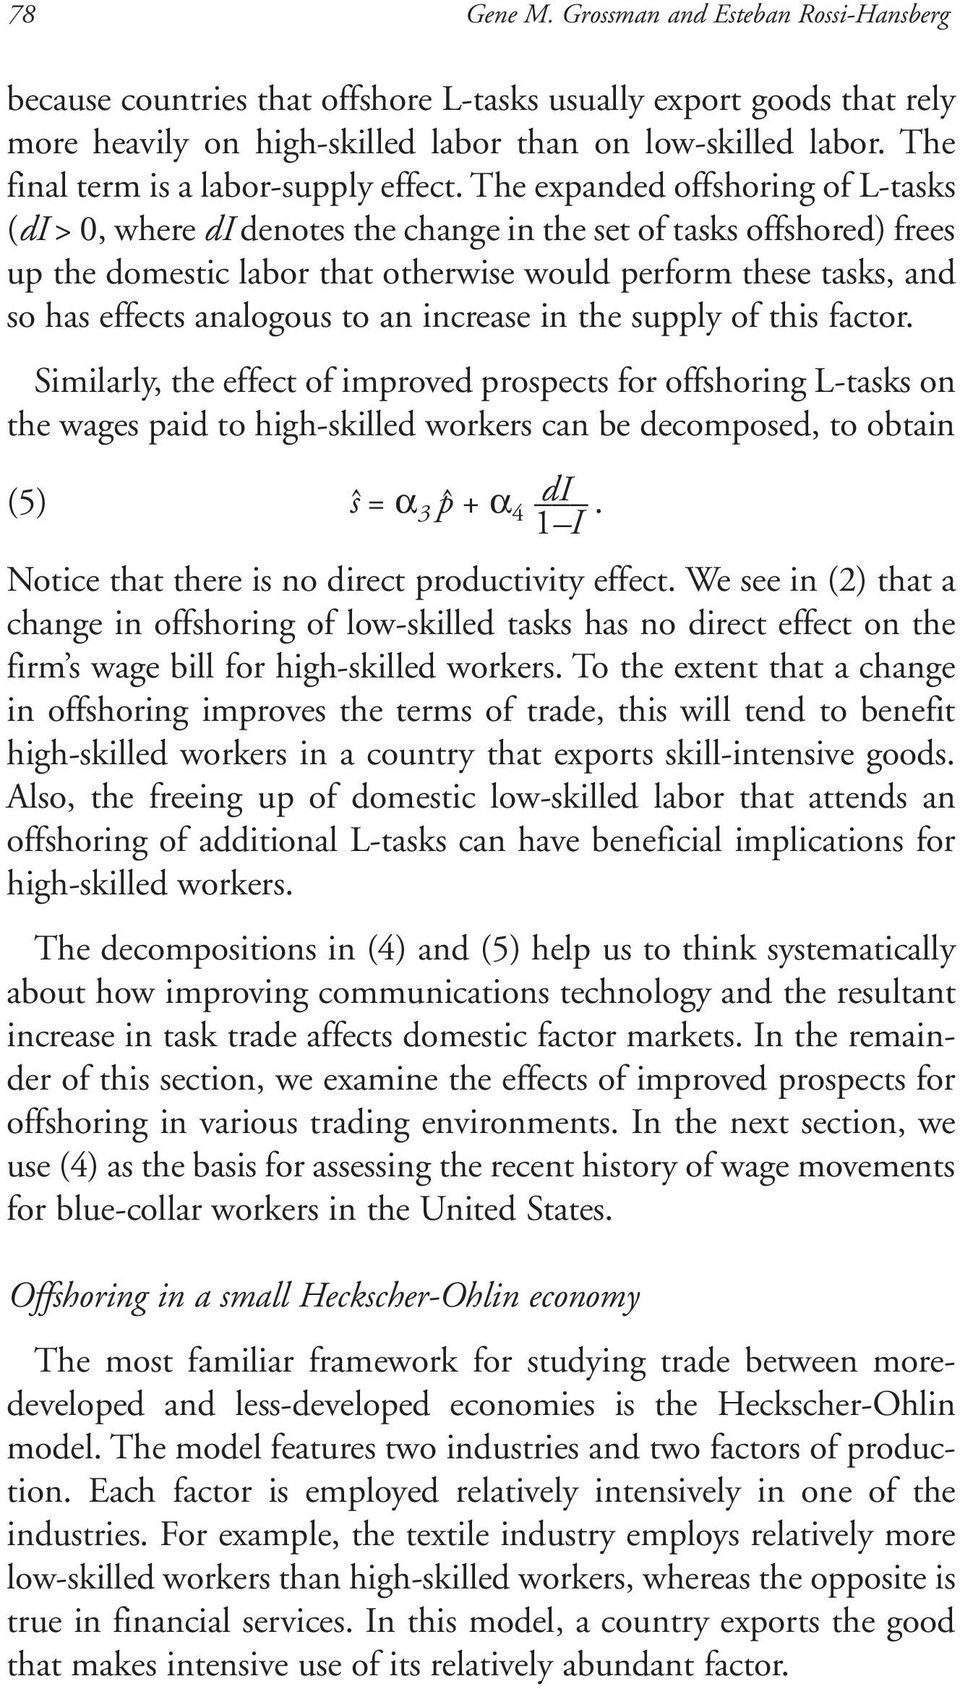 The expanded offshoring of L-tasks (di > 0, where di denotes the change in the set of tasks offshored) frees up the domestic labor that otherwise would perform these tasks, and so has effects